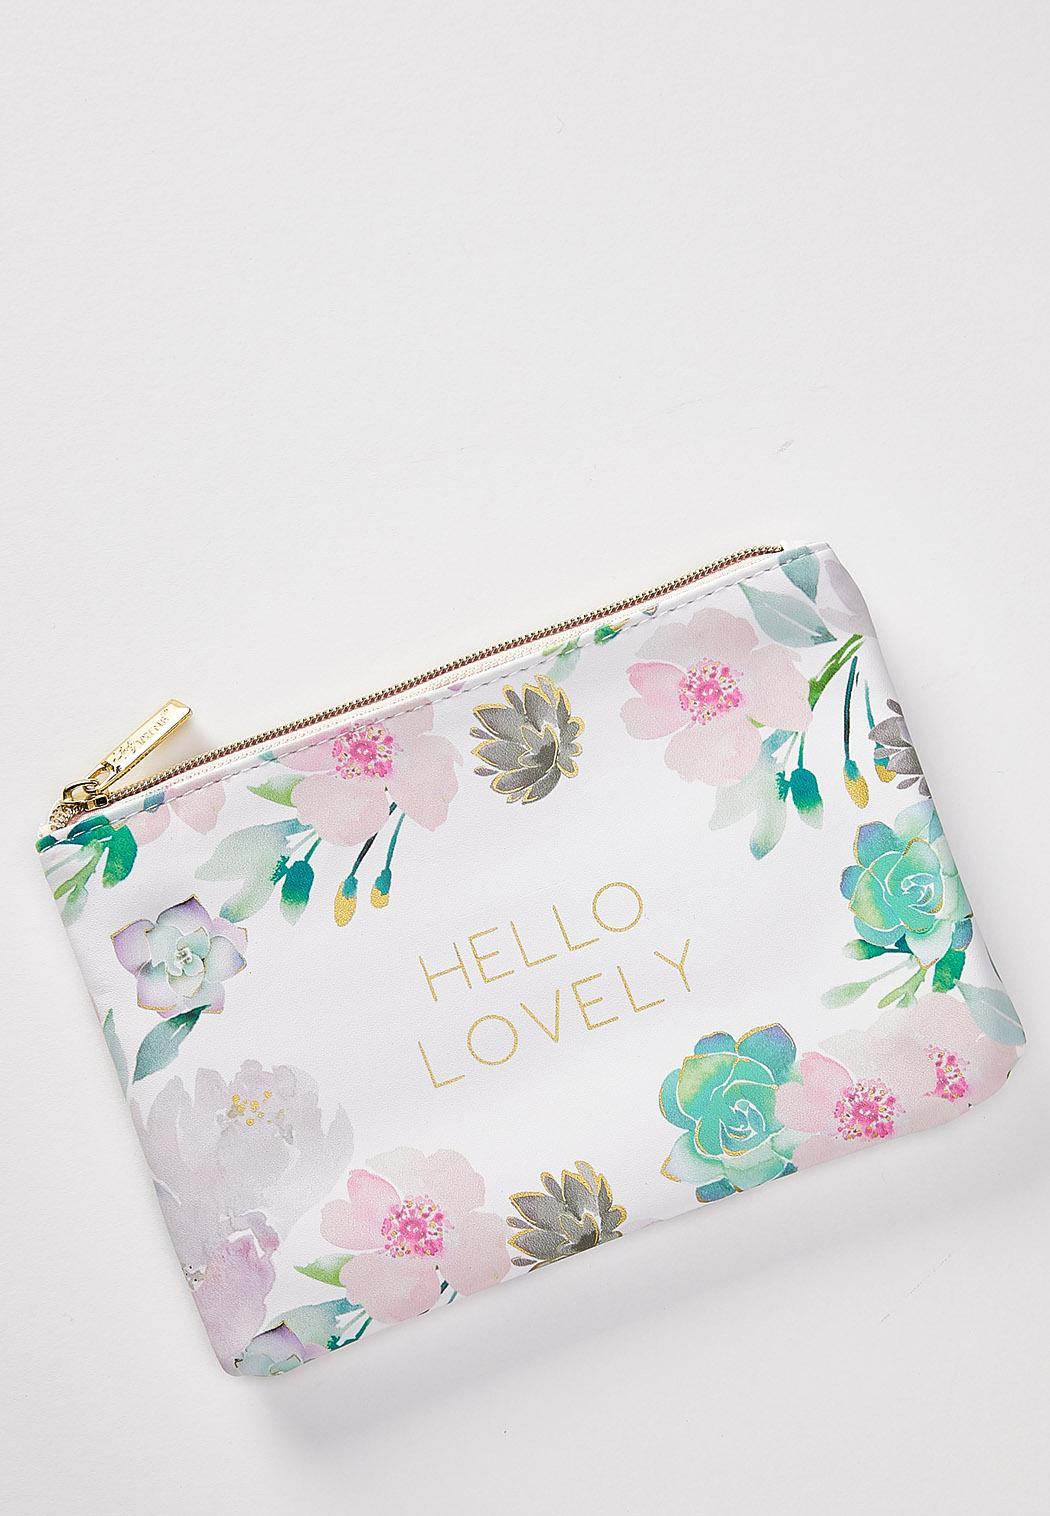 Hello Lovely Floral Pouch